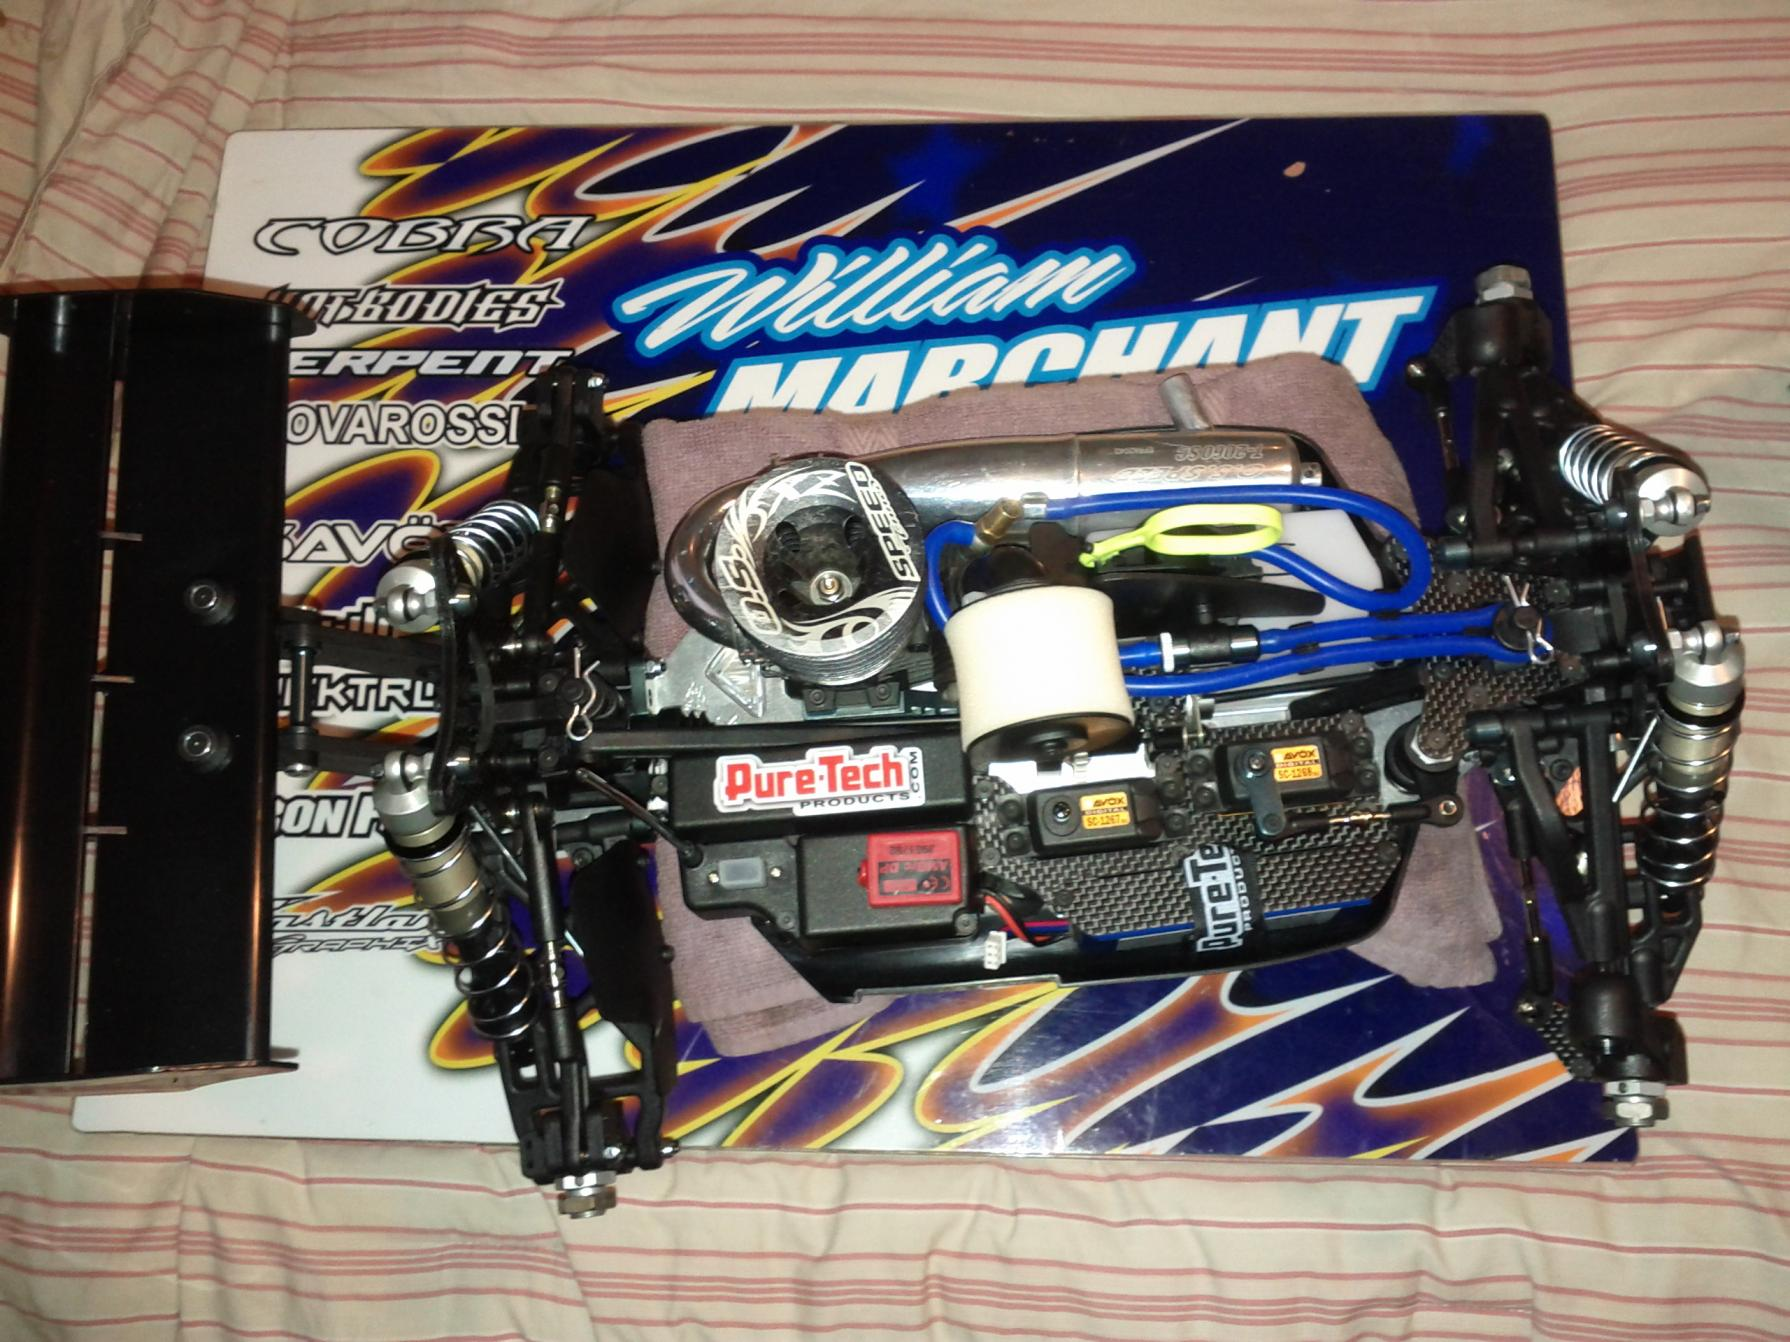 fastlane rc with 189310 Mugen Mbx6 1032 on Dx7 7 Channel Dsmx C2 AE Transmitter With Ar8000 Receiver P Spm7000 besides Fastlane Rc Snake Bite Monster Truck moreover Product product id 159 furthermore YZ2 JoeWalters KansasCity20150124 likewise Rare FASTLANE NIKKO HUMMER H1 1 6 HARD BODY 253064681871.